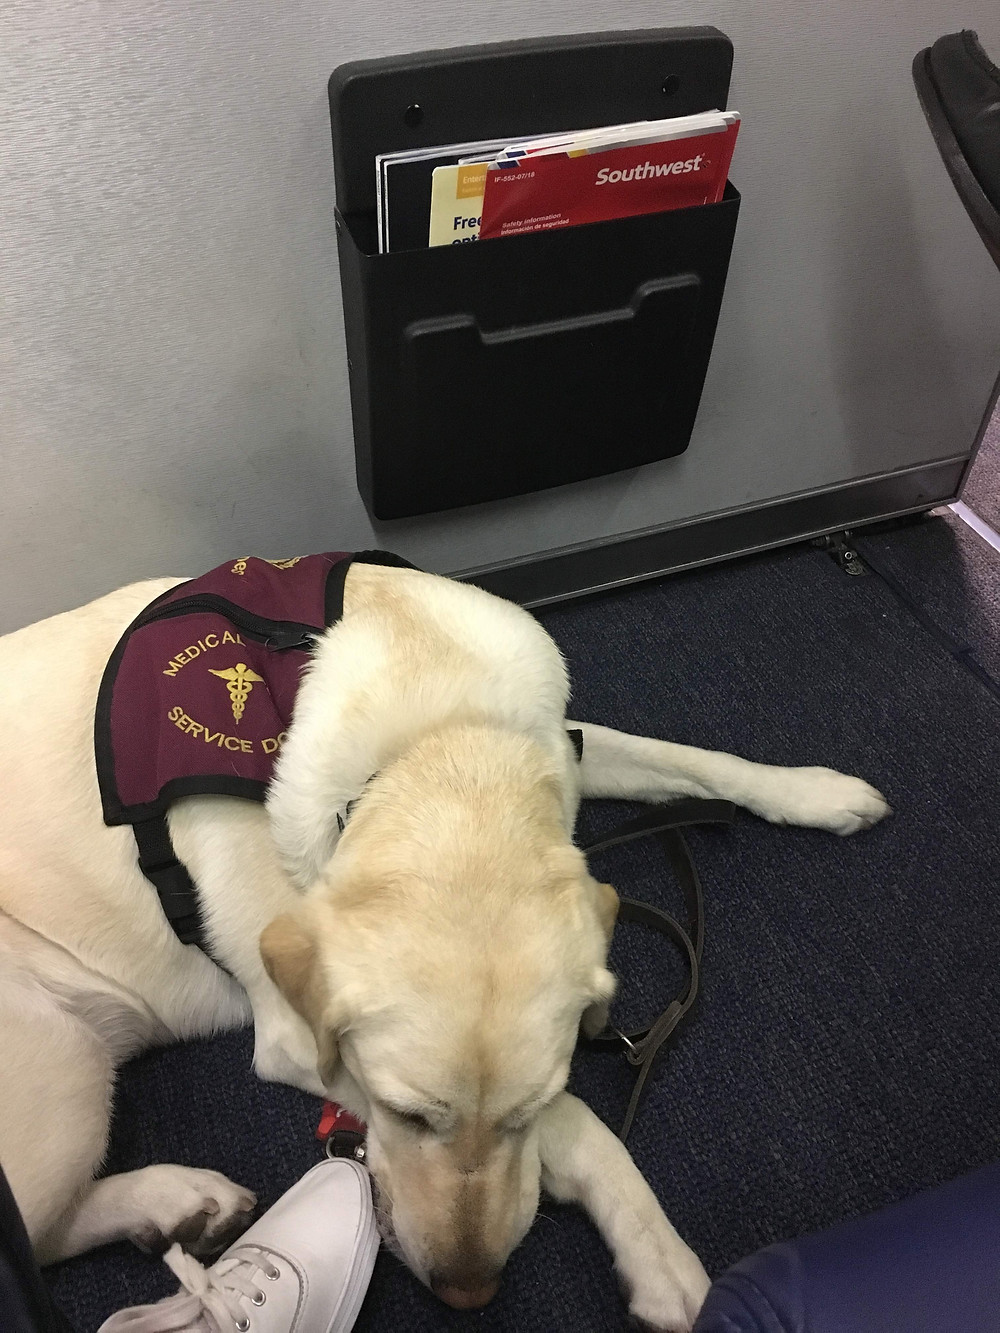 Ricki laying on the floor of a Southwest airplane, on the bulkhead row.